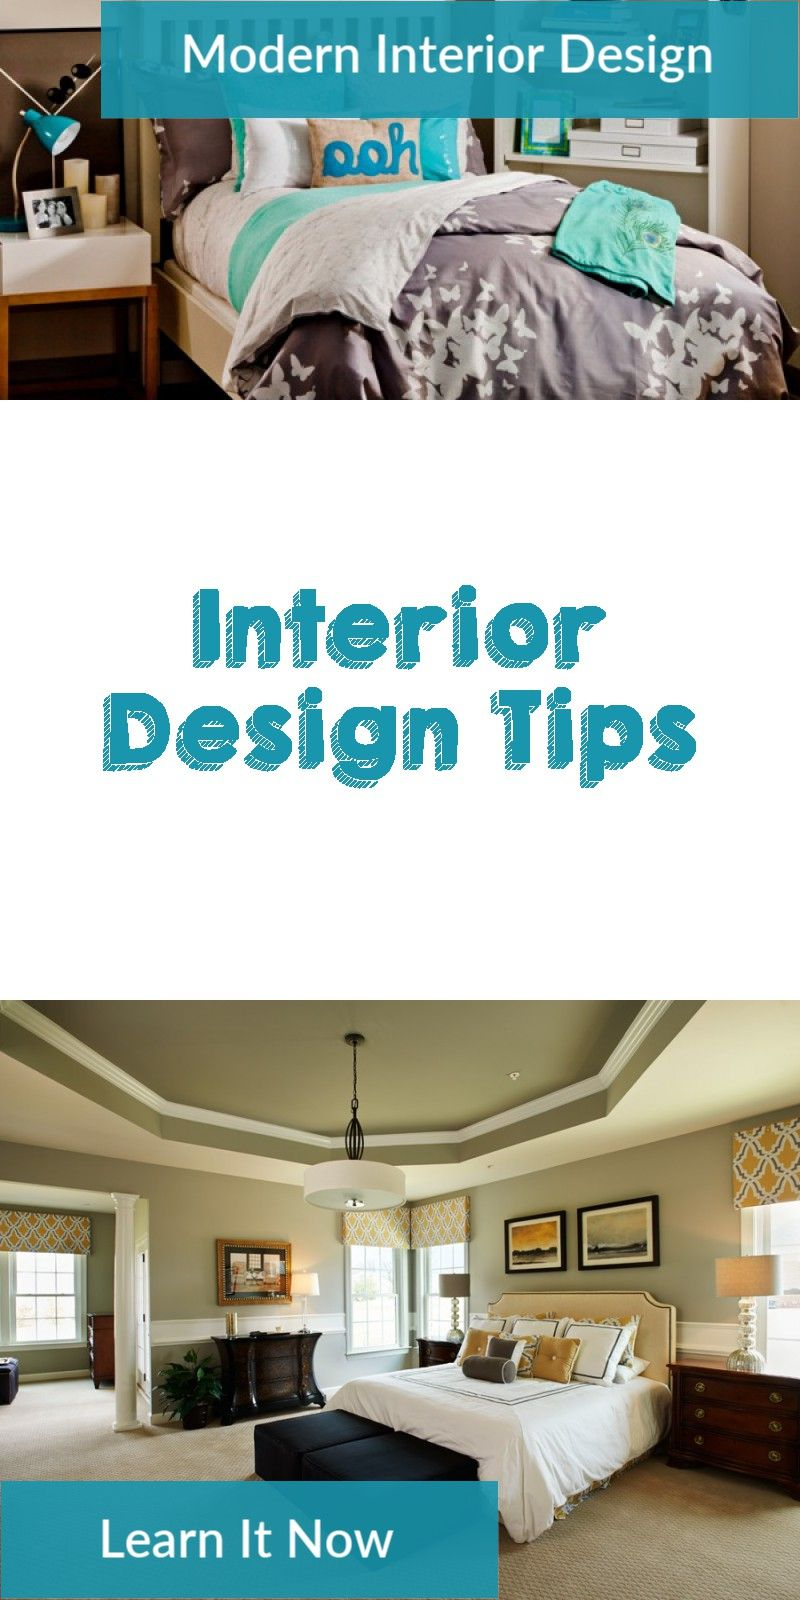 Interior design home tricks that you must know check out this great article interiordesign grateful homedecor useful also rh pinterest